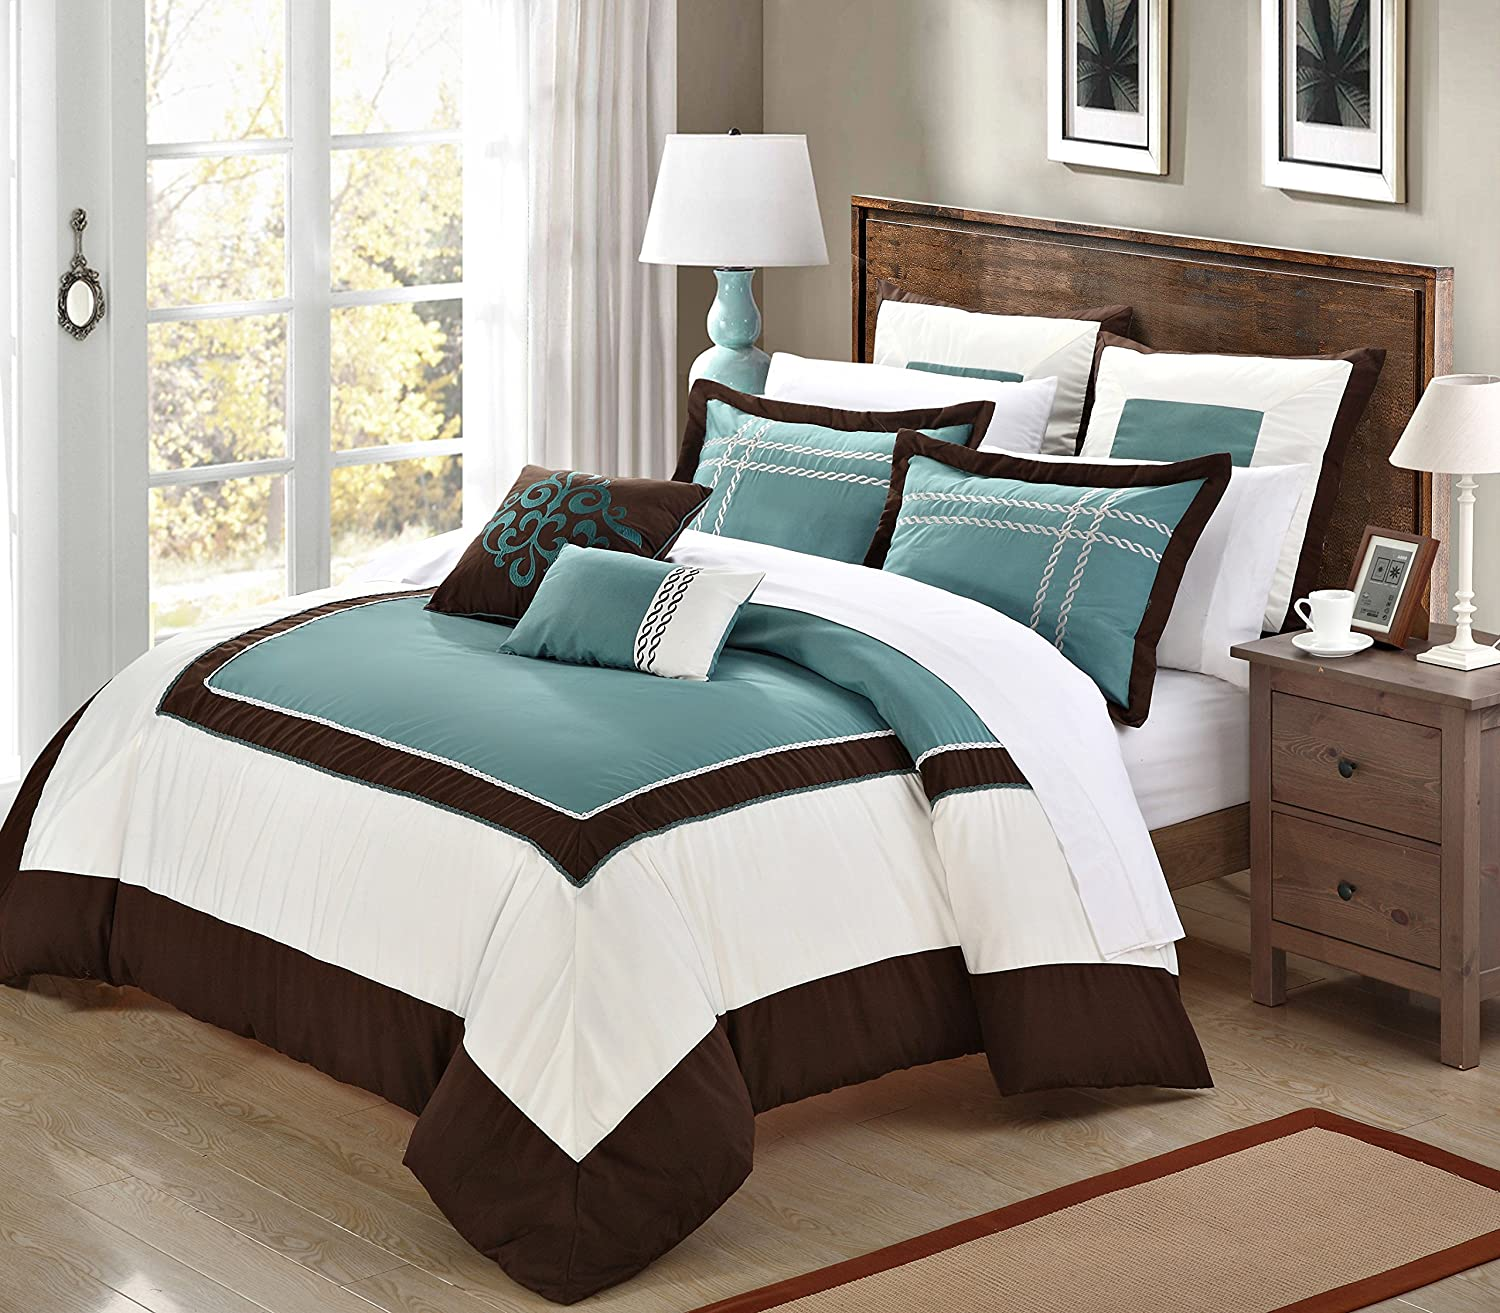 Blue bedding comforter sets archives bedroom decor ideas - Brown and green bedroom ...